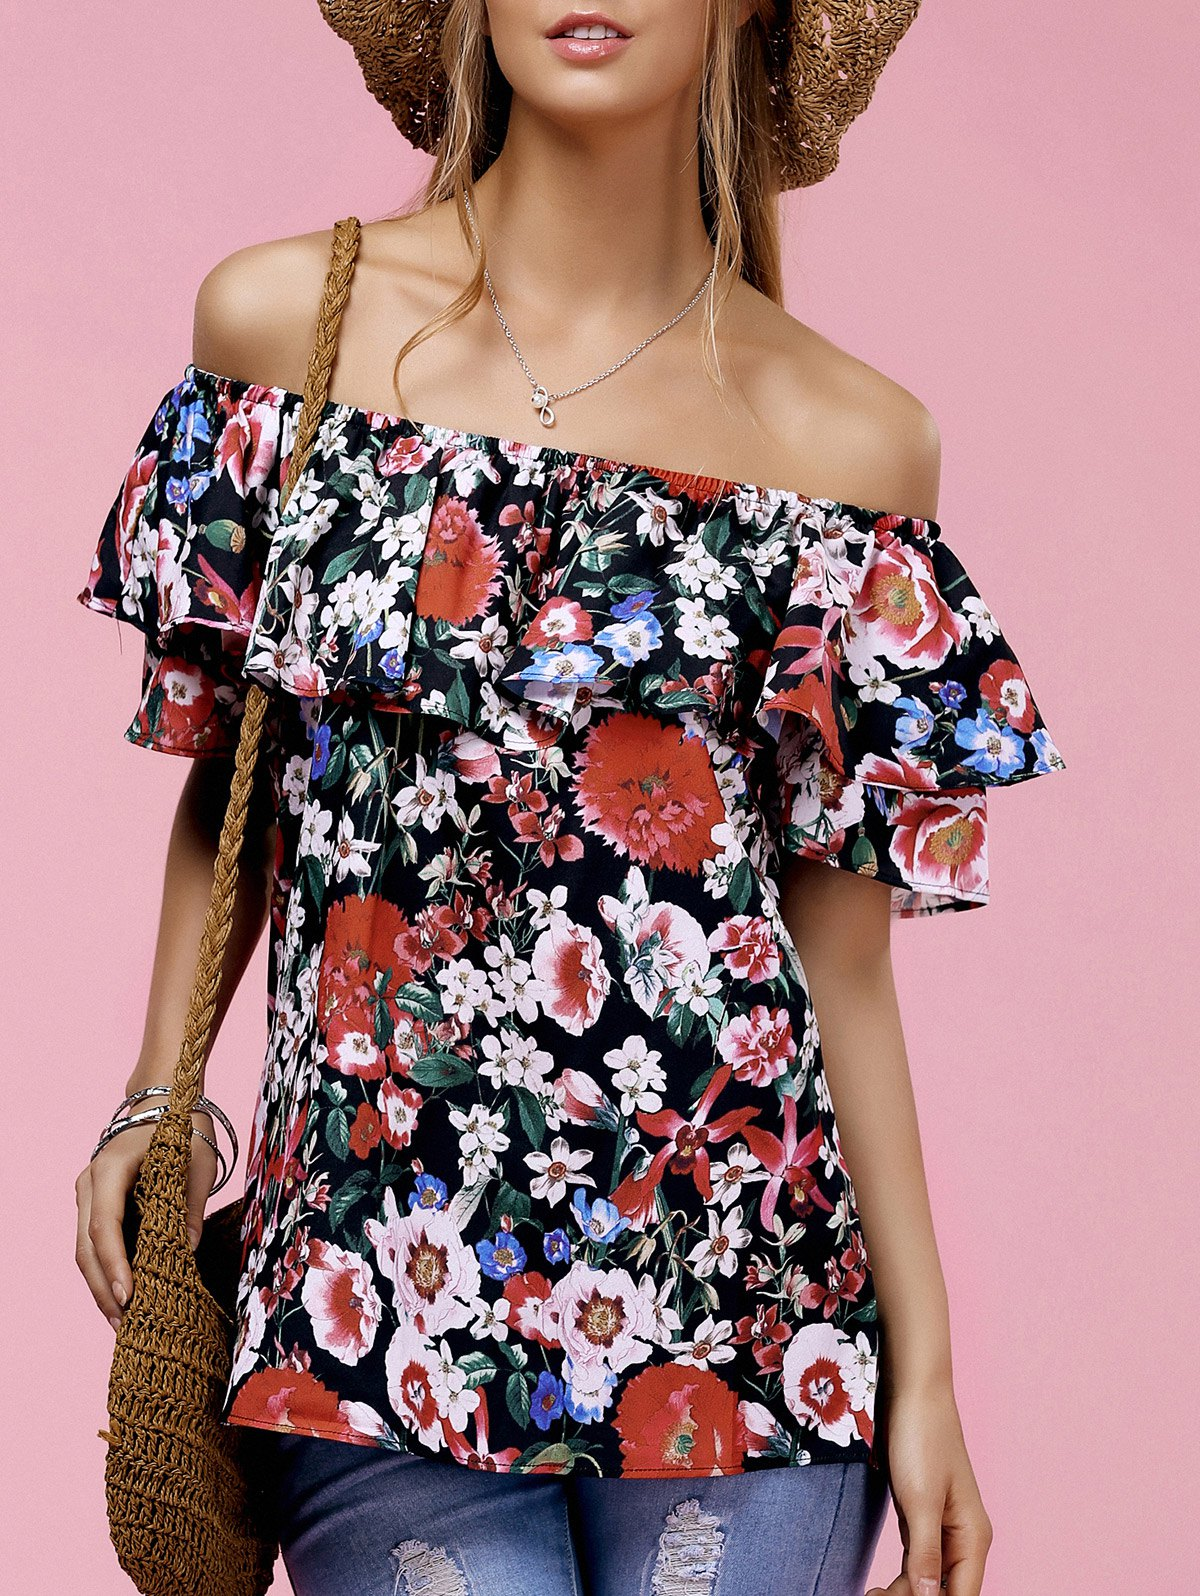 Fashionable Women's Off The Shoulder Floral Print Ruffle Top - BLACK L